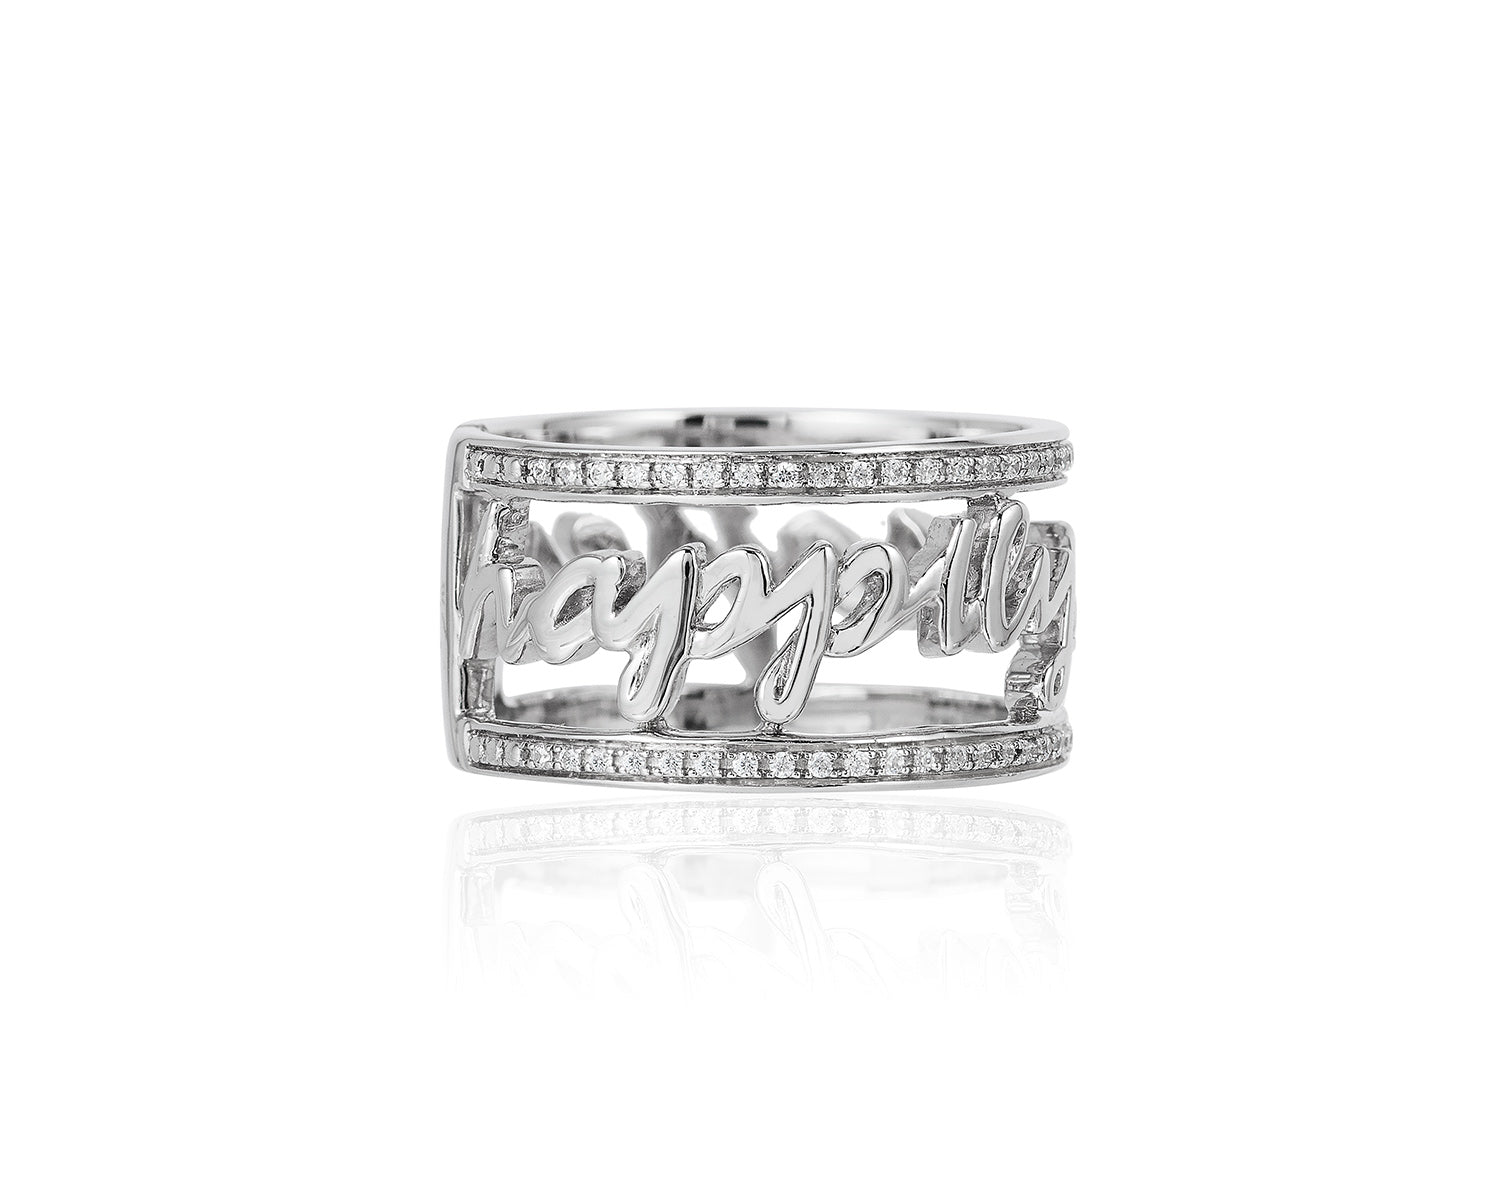 enchanted_disney-majestic-princess_ring-sterling_silver_1/5CTTW_4